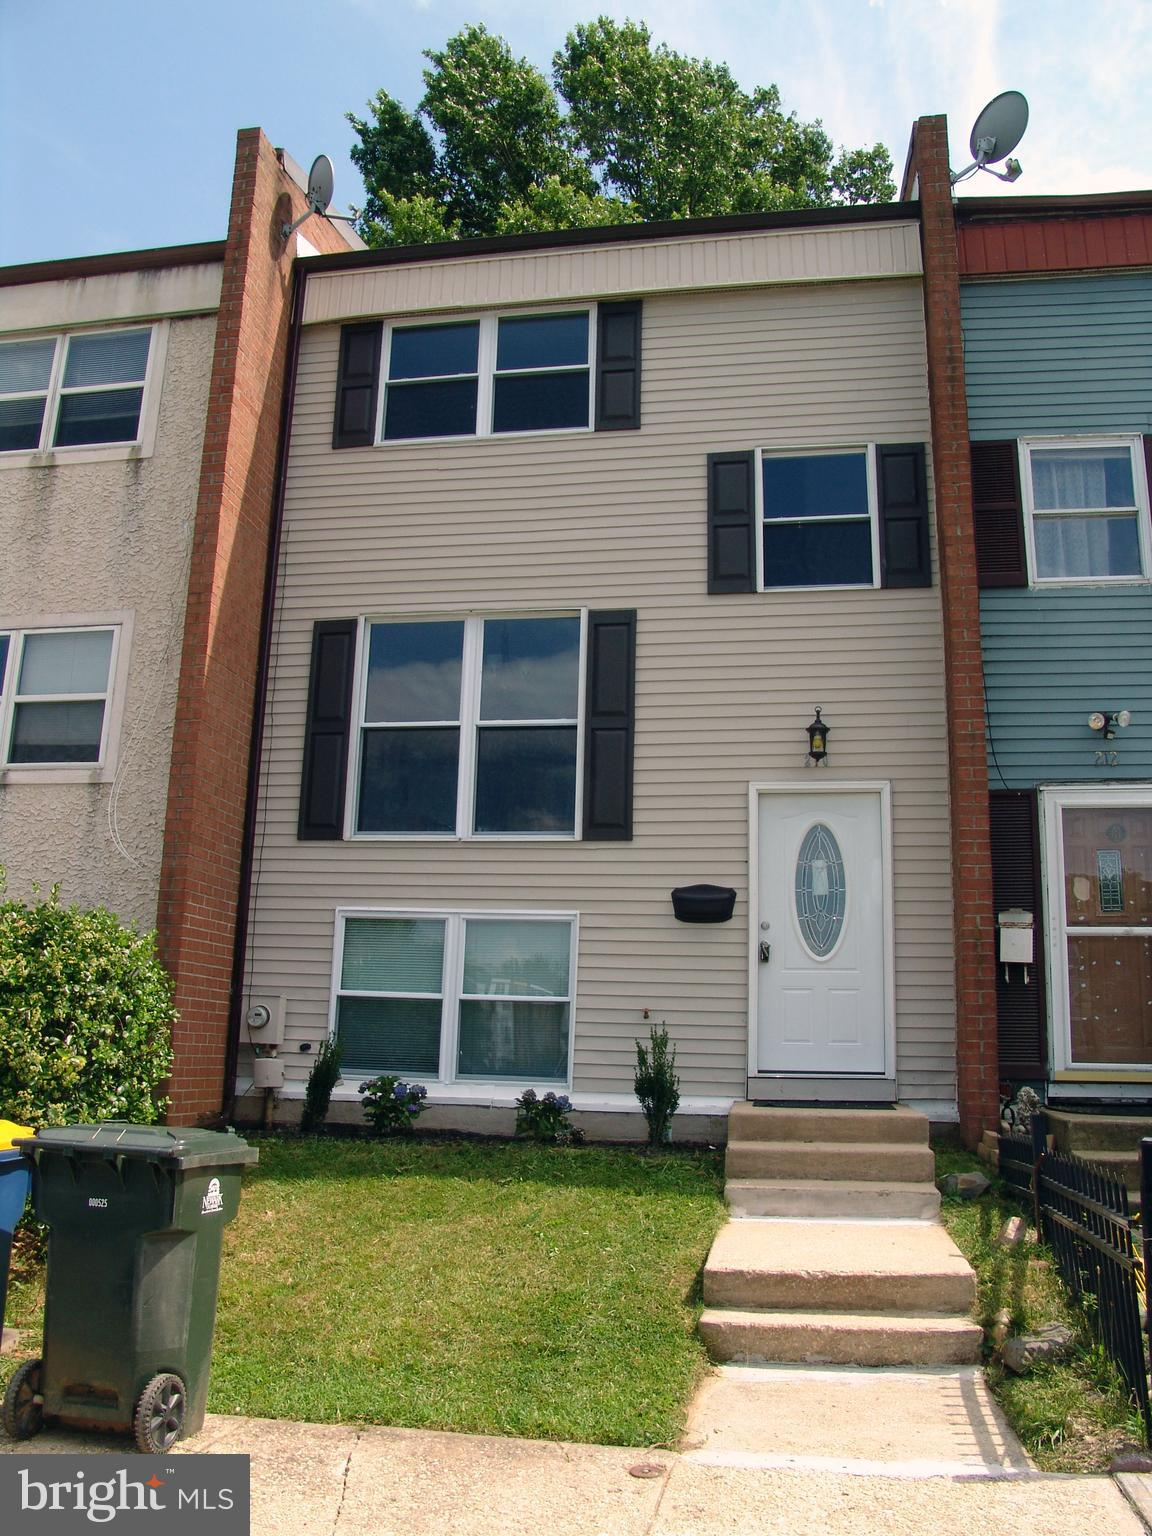 Move-in ready! This 3 bedroom, 1.5 bath townhome has been renovated with fresh paint, new carpet, ne